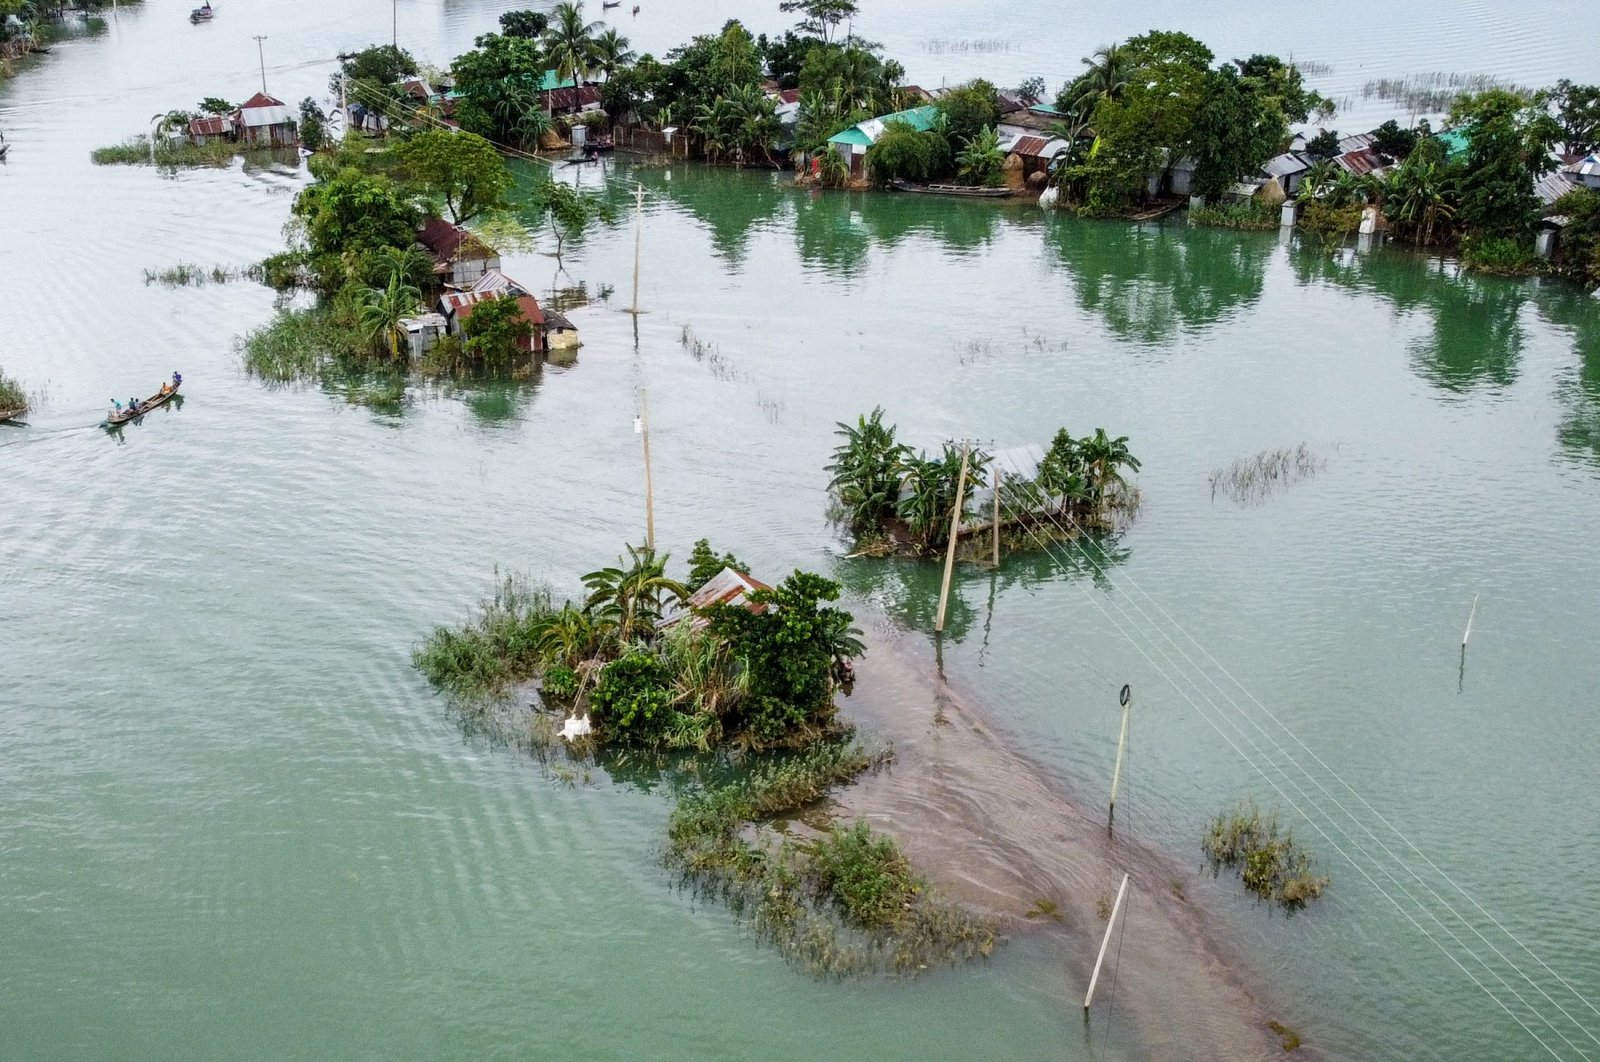 This aerial view shows flooded houses in Sunamganj, Bangladesh on July 15, 2020. (AFP Photo)